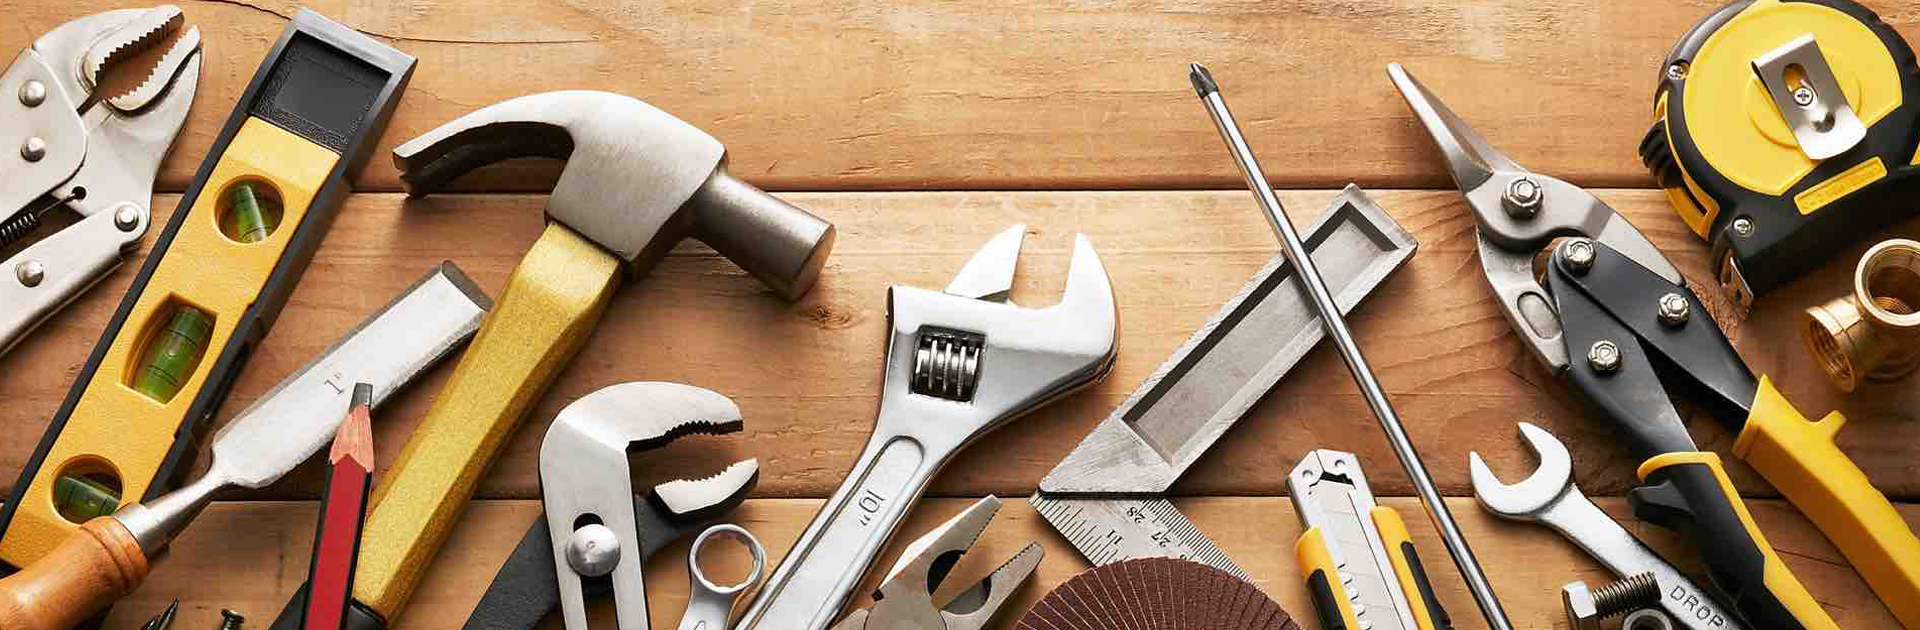 Banner-DHZ-tools